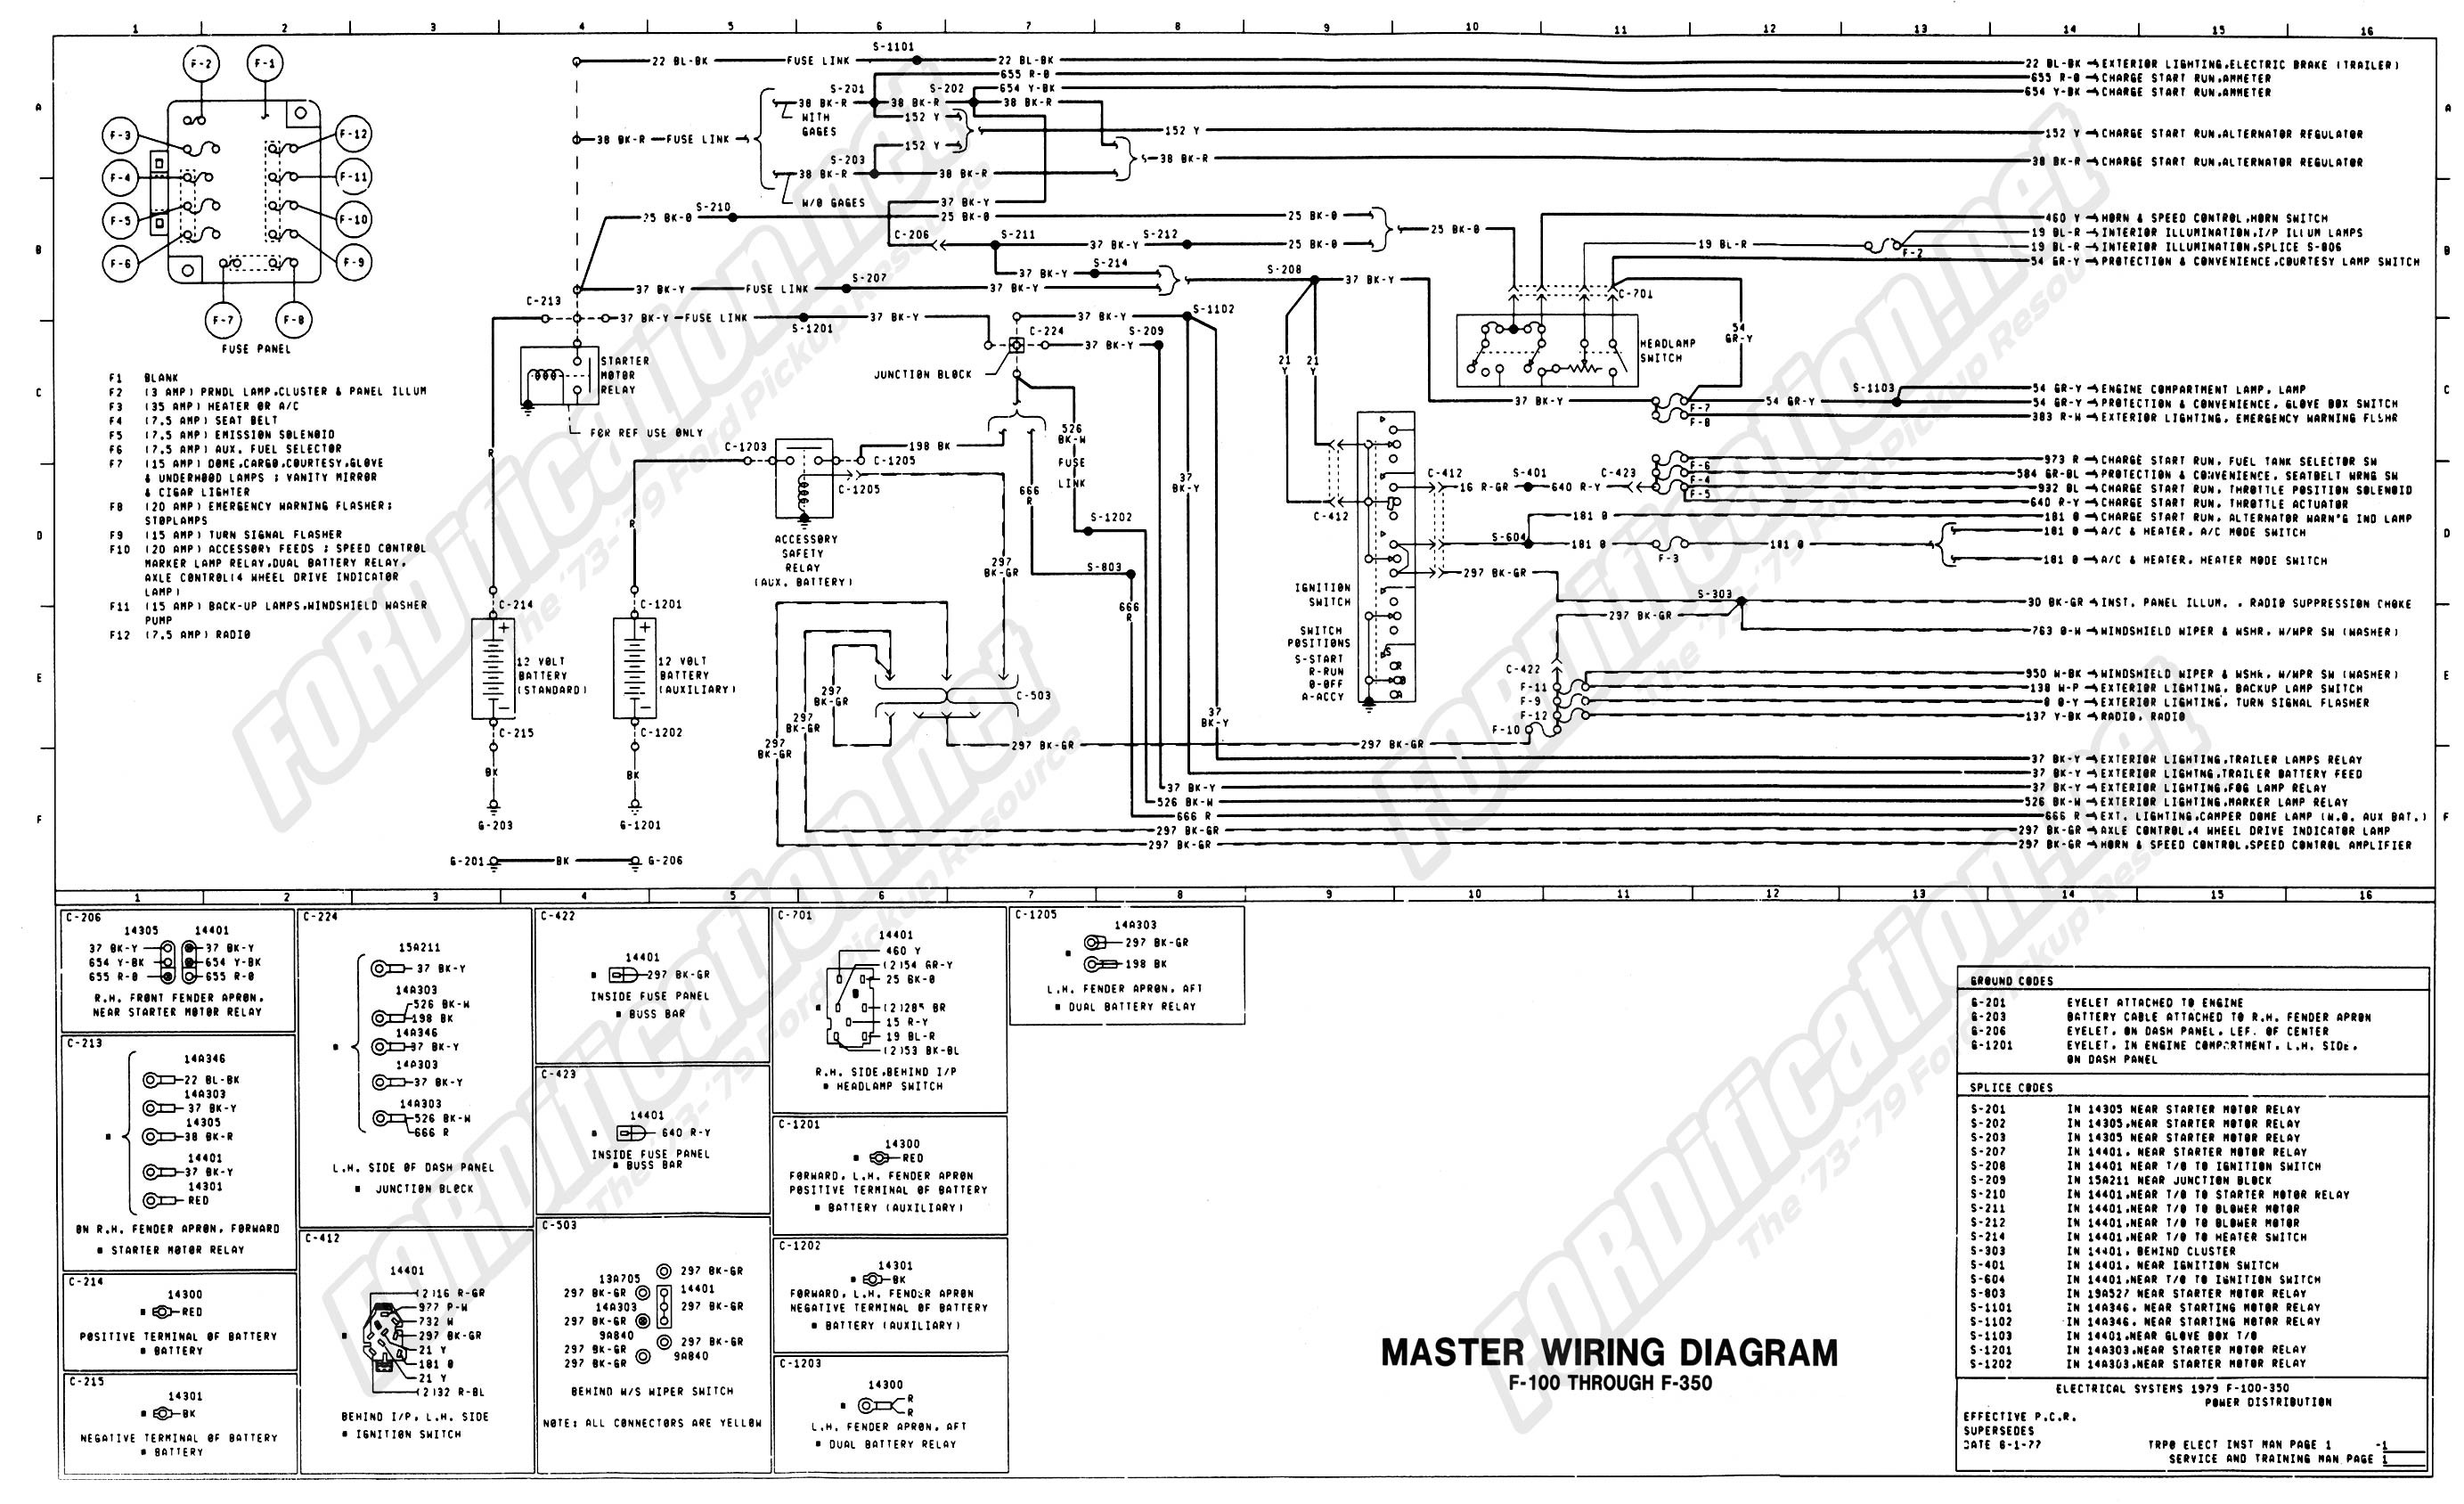 Mitchell Wiring Diagrams Free 1973 1979 ford Truck Wiring Diagrams & Schematics fordification Of Mitchell Wiring Diagrams Free